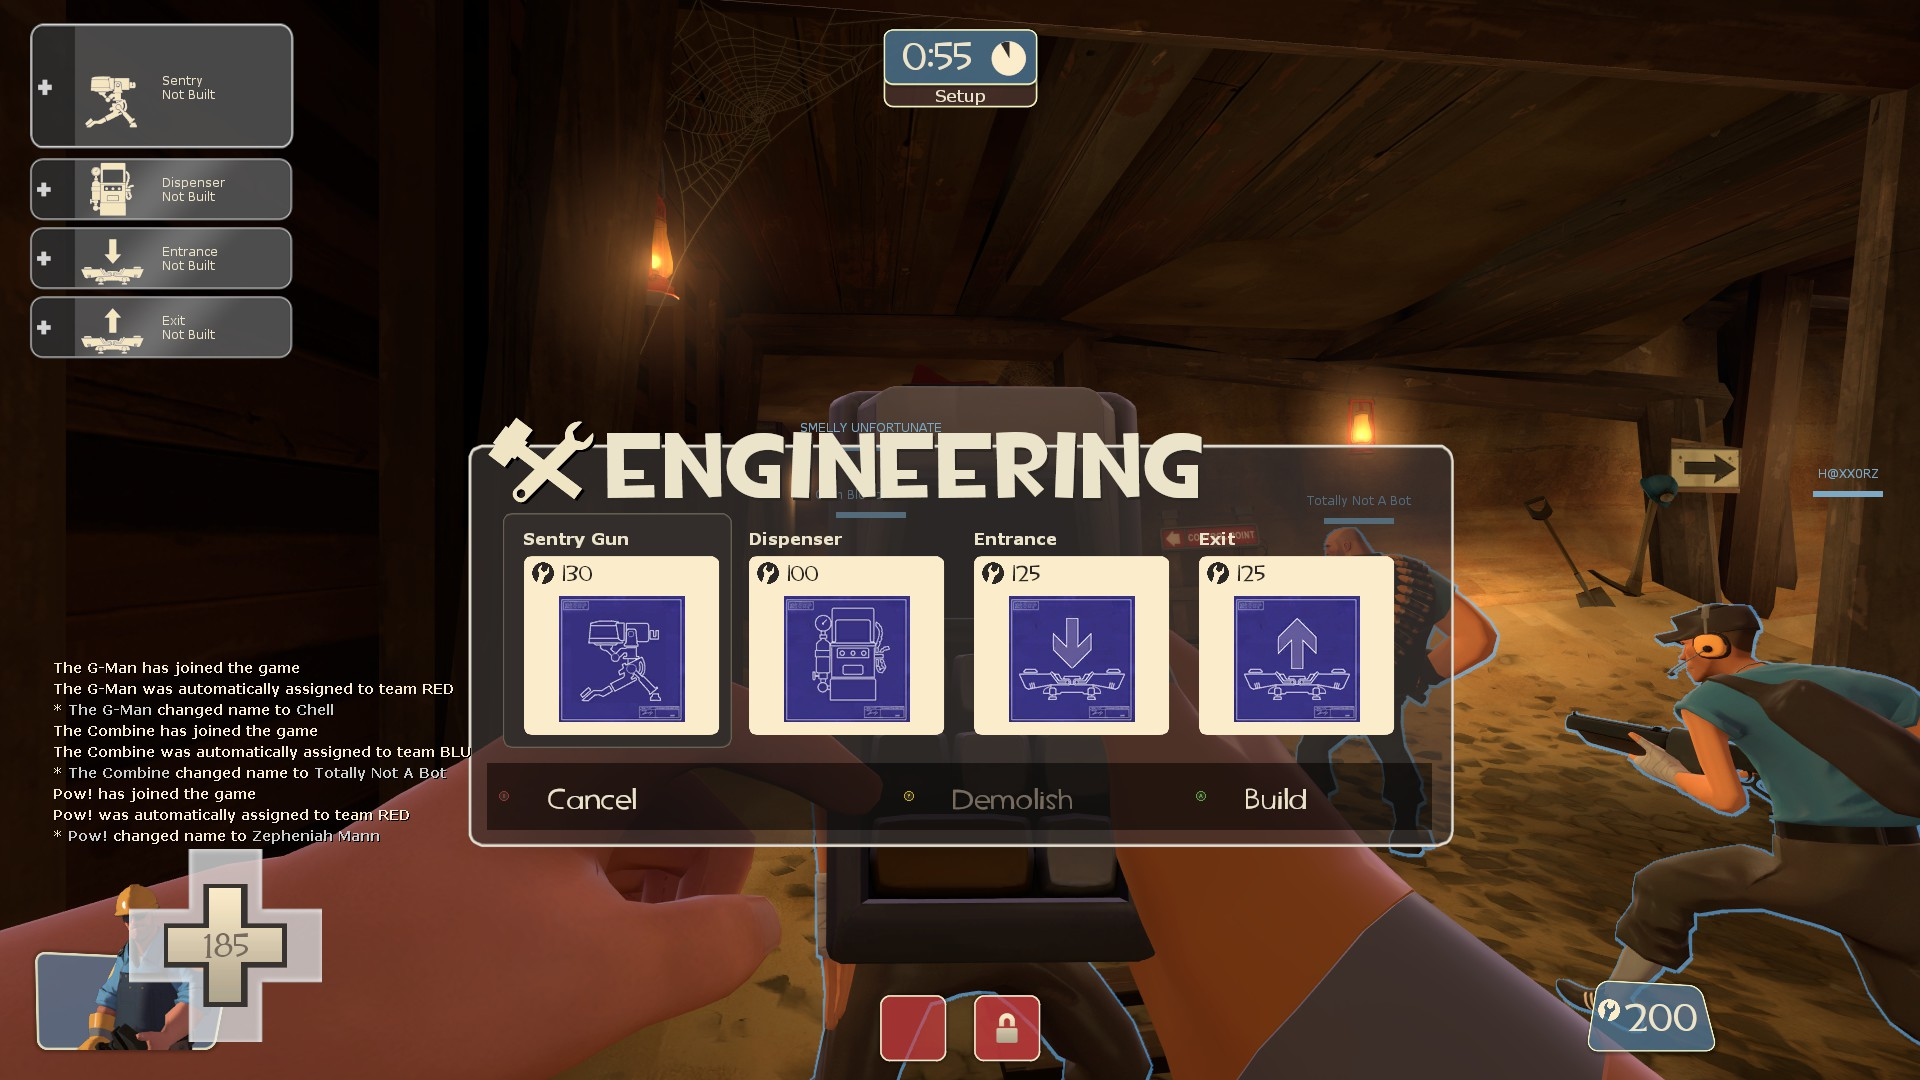 HUD editing: short questions, quick answers